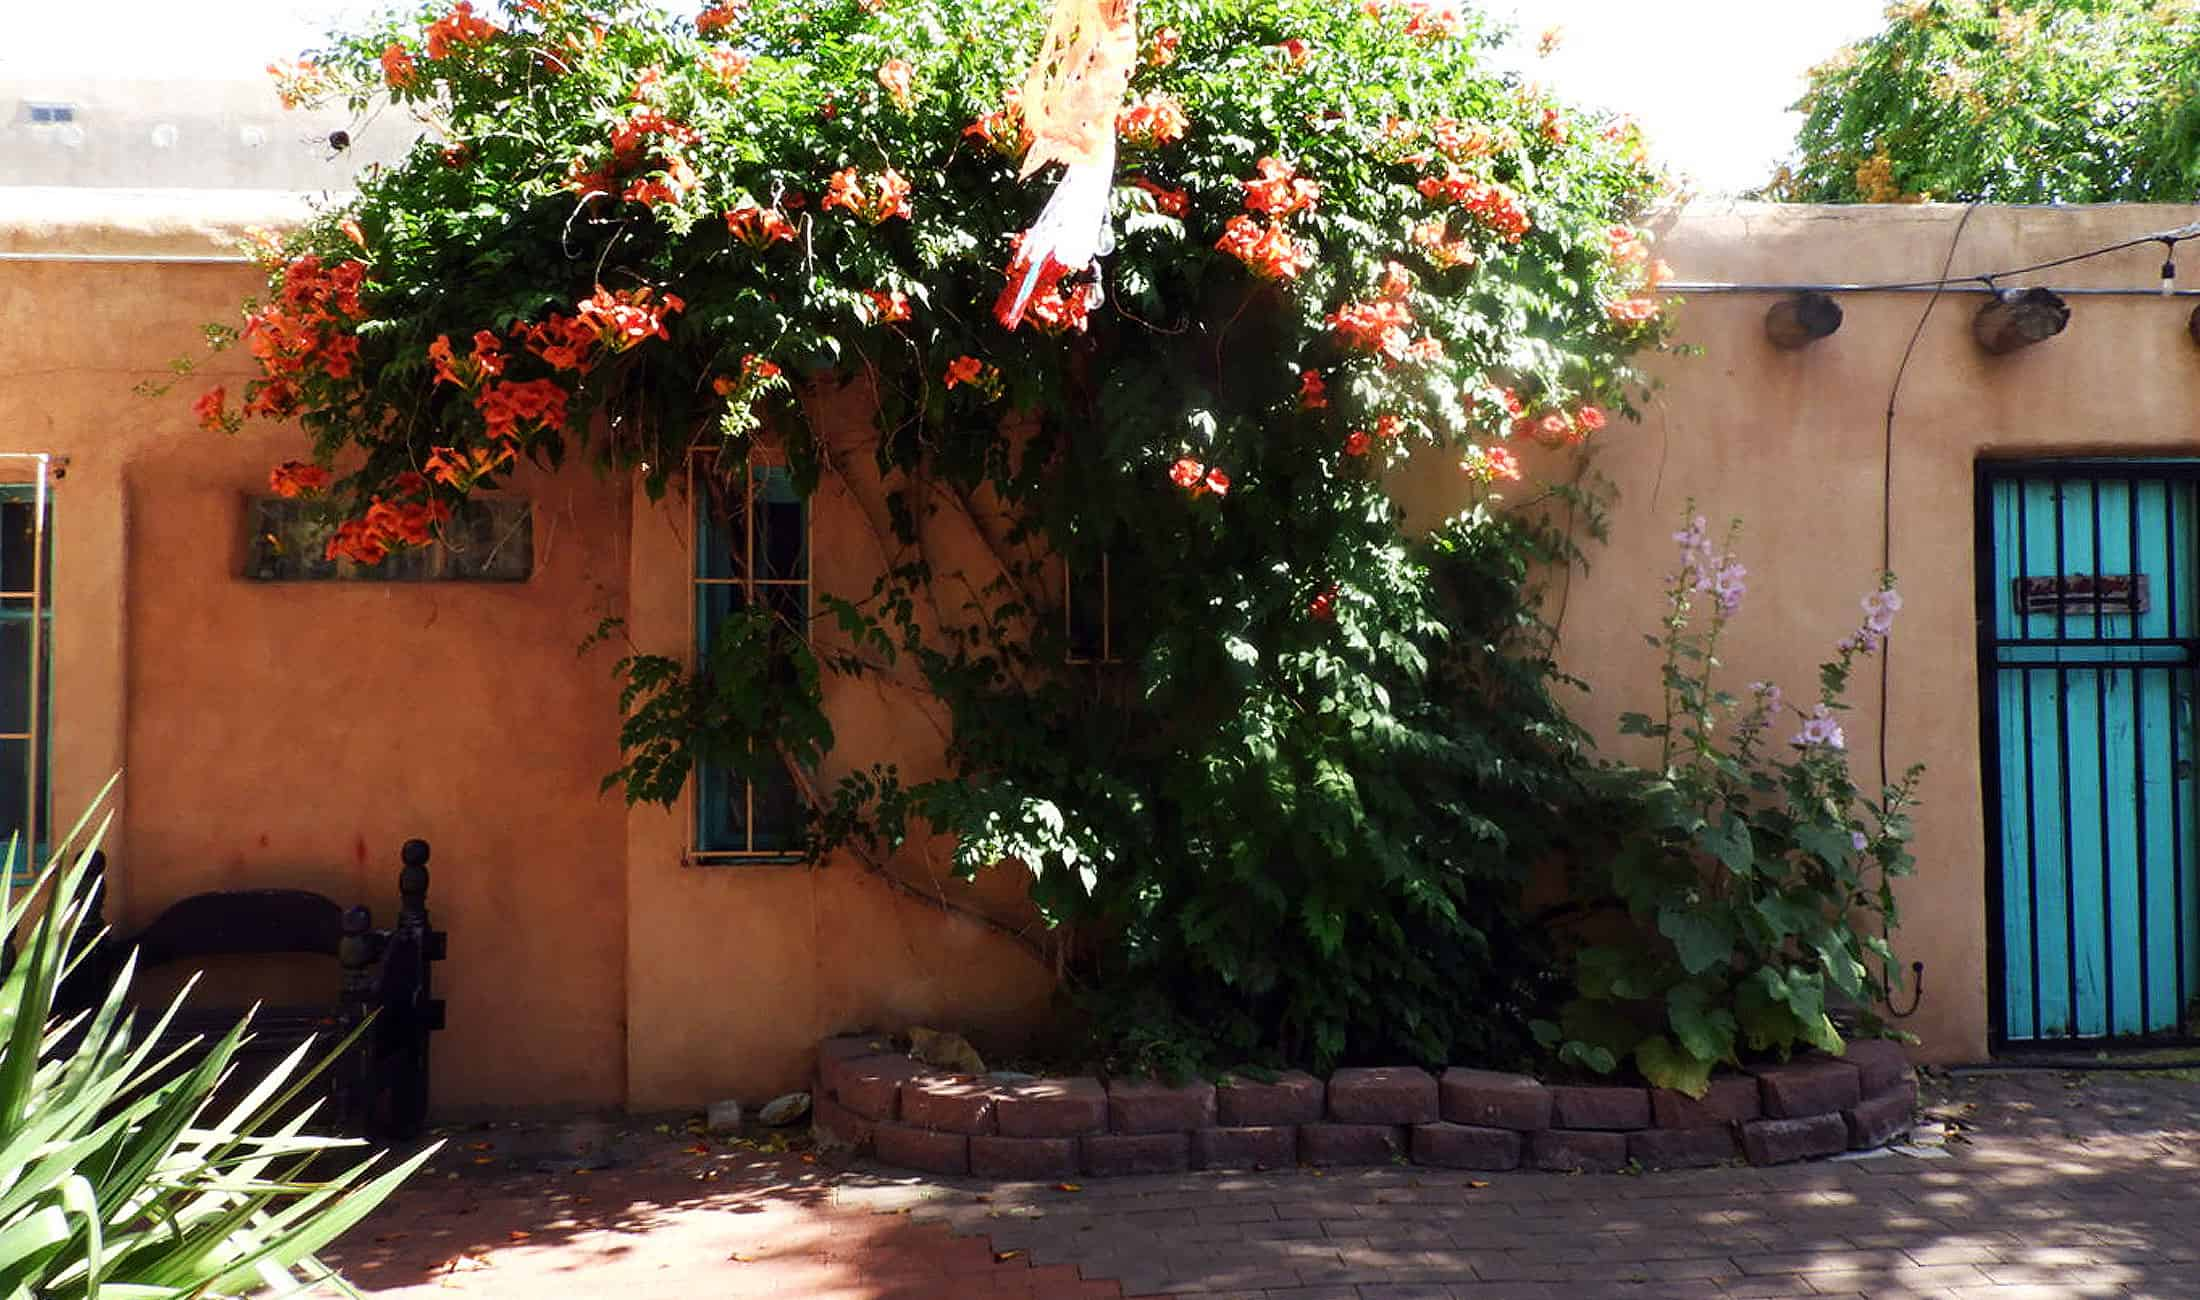 Albuquerque City Guide: Top Ways to Spend 3 Days in New Mexico's Largest City